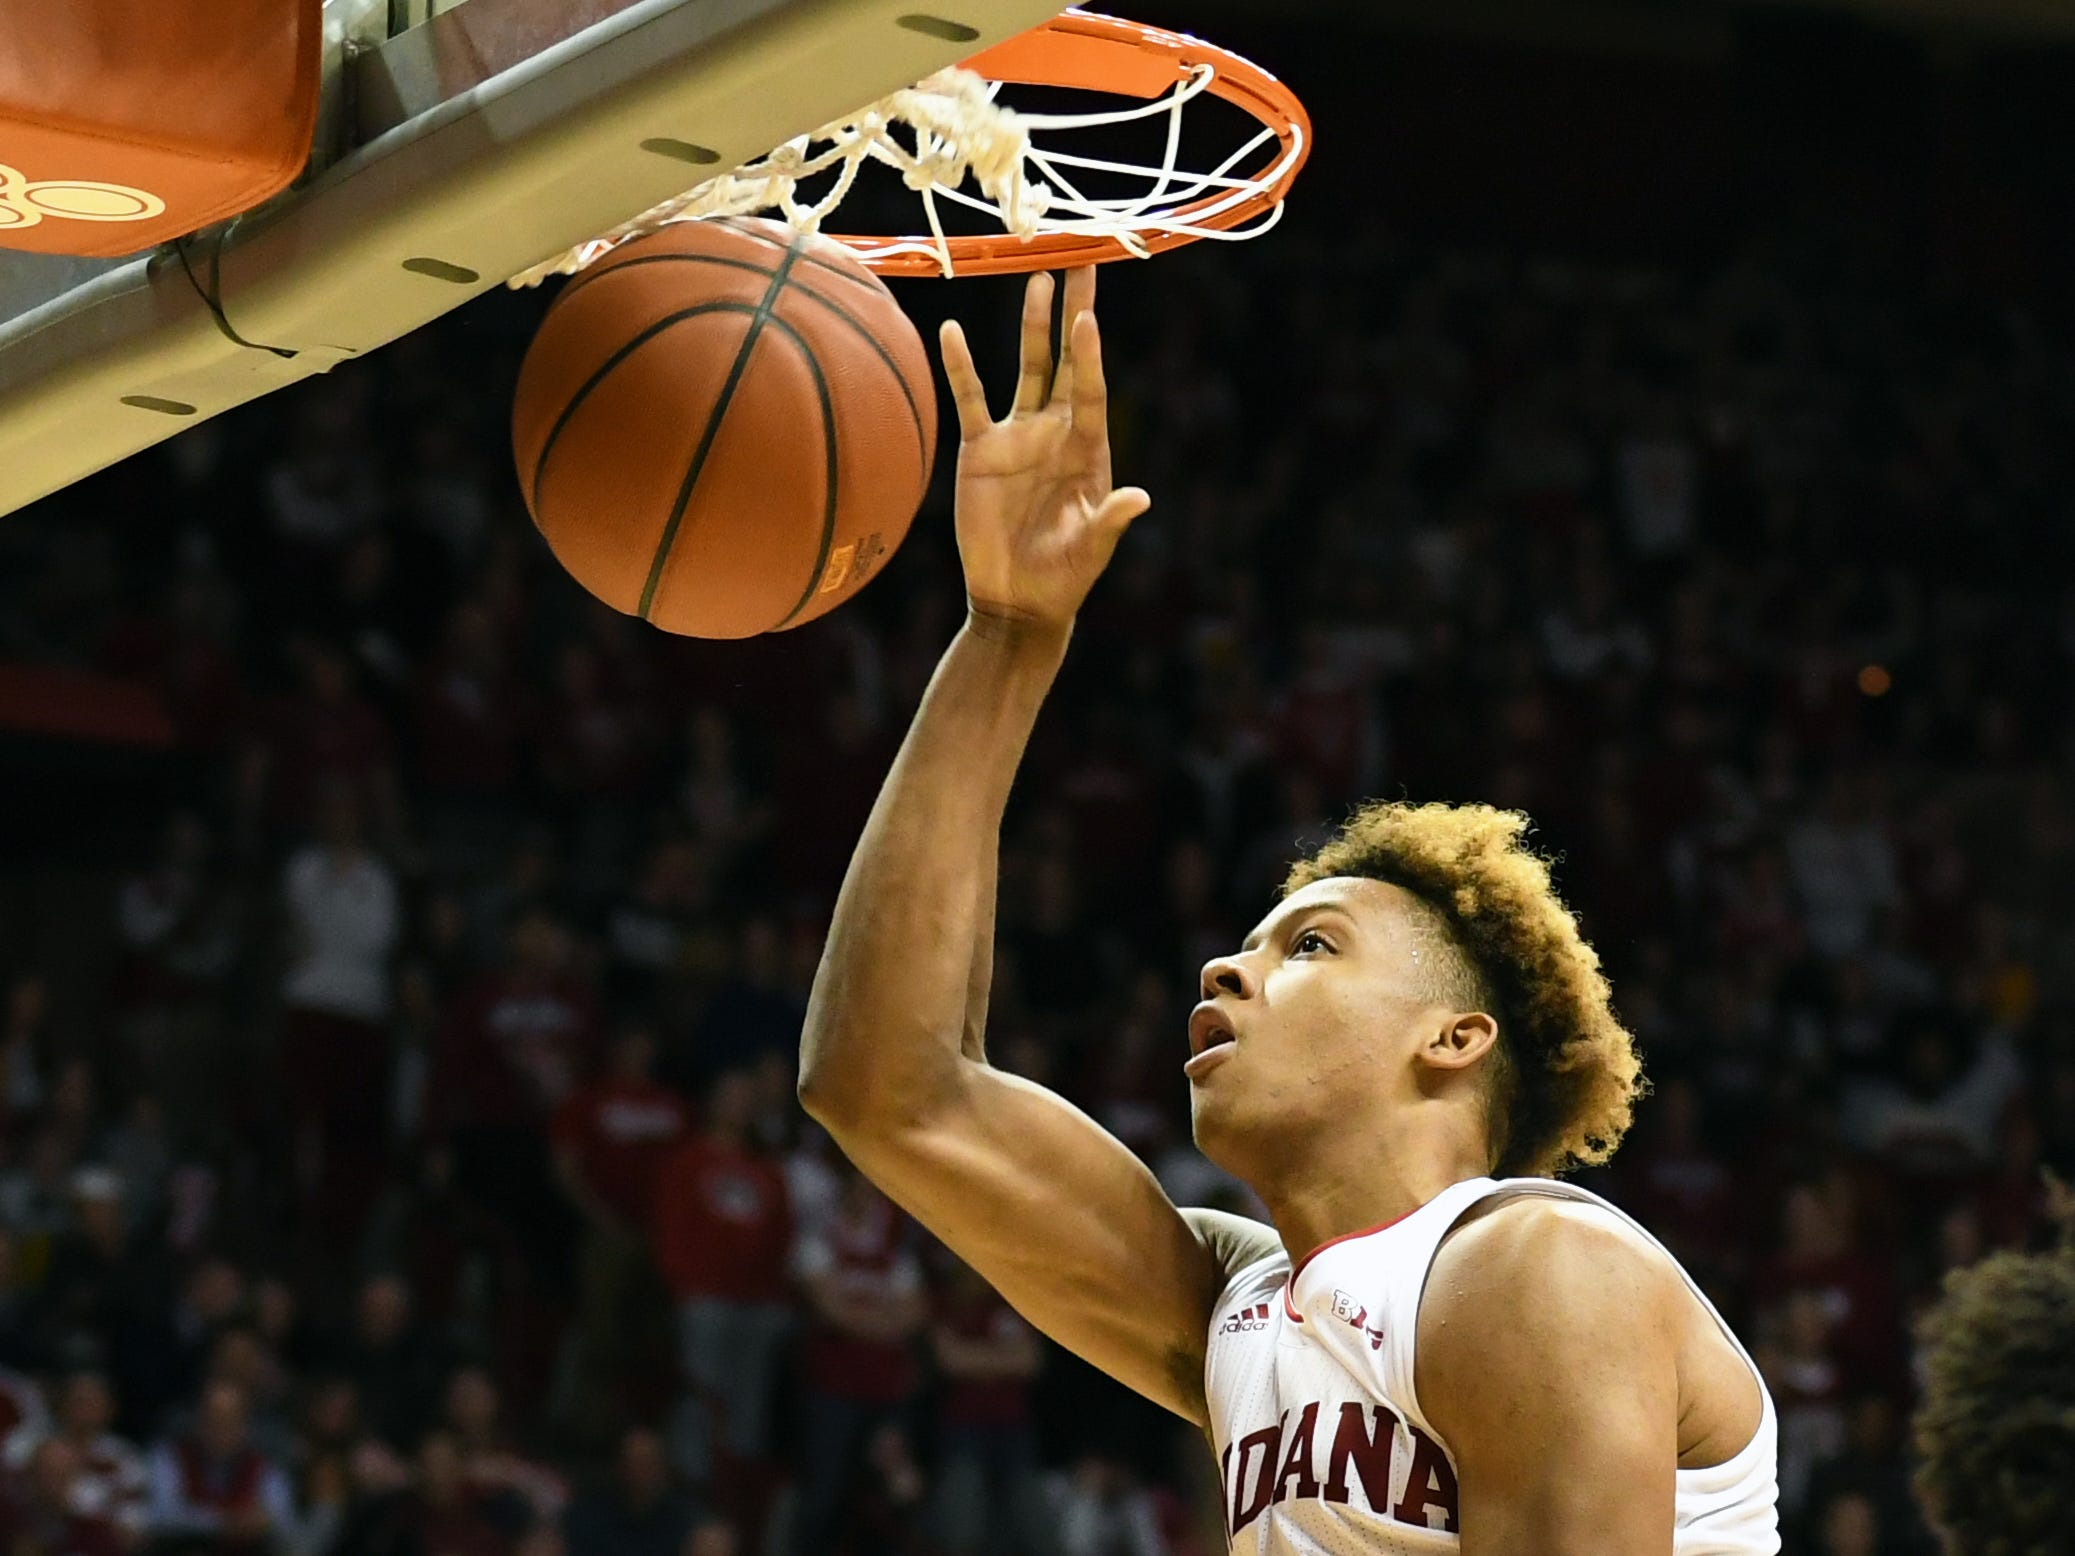 Indiana Hoosiers guard Romeo Langford (0) dunks the ball during the game against Montana State at Simon Skjodt Assembly Hall in Bloomington, Ind., on Friday, Nov. 9, 2018.